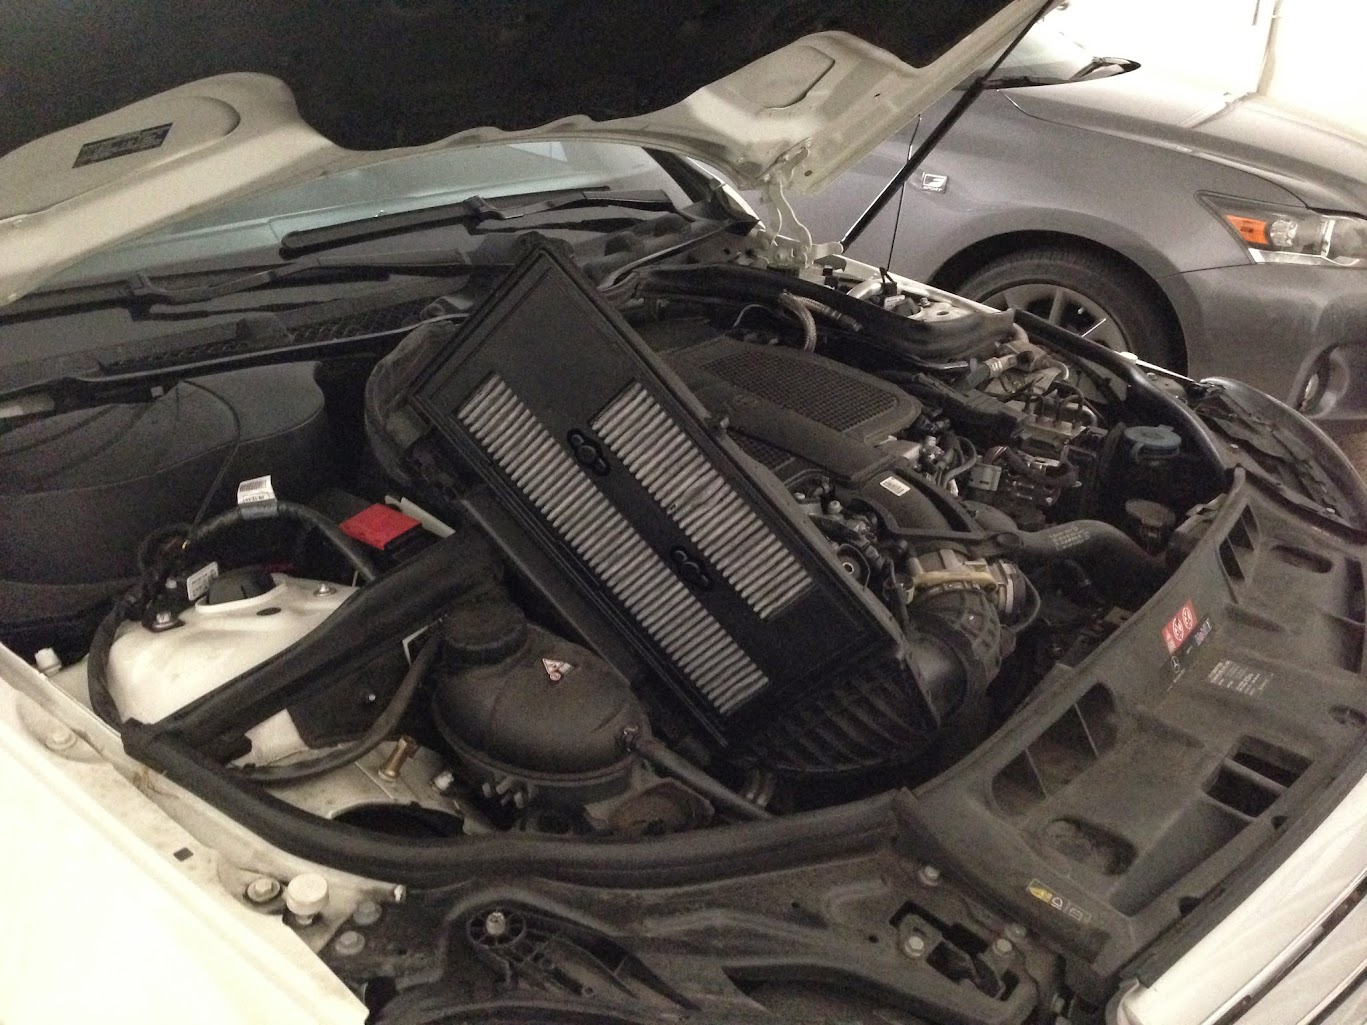 Changing air filter in 2013 c300 sport 4matic mercedes for Mercedes benz e350 air filter replacement